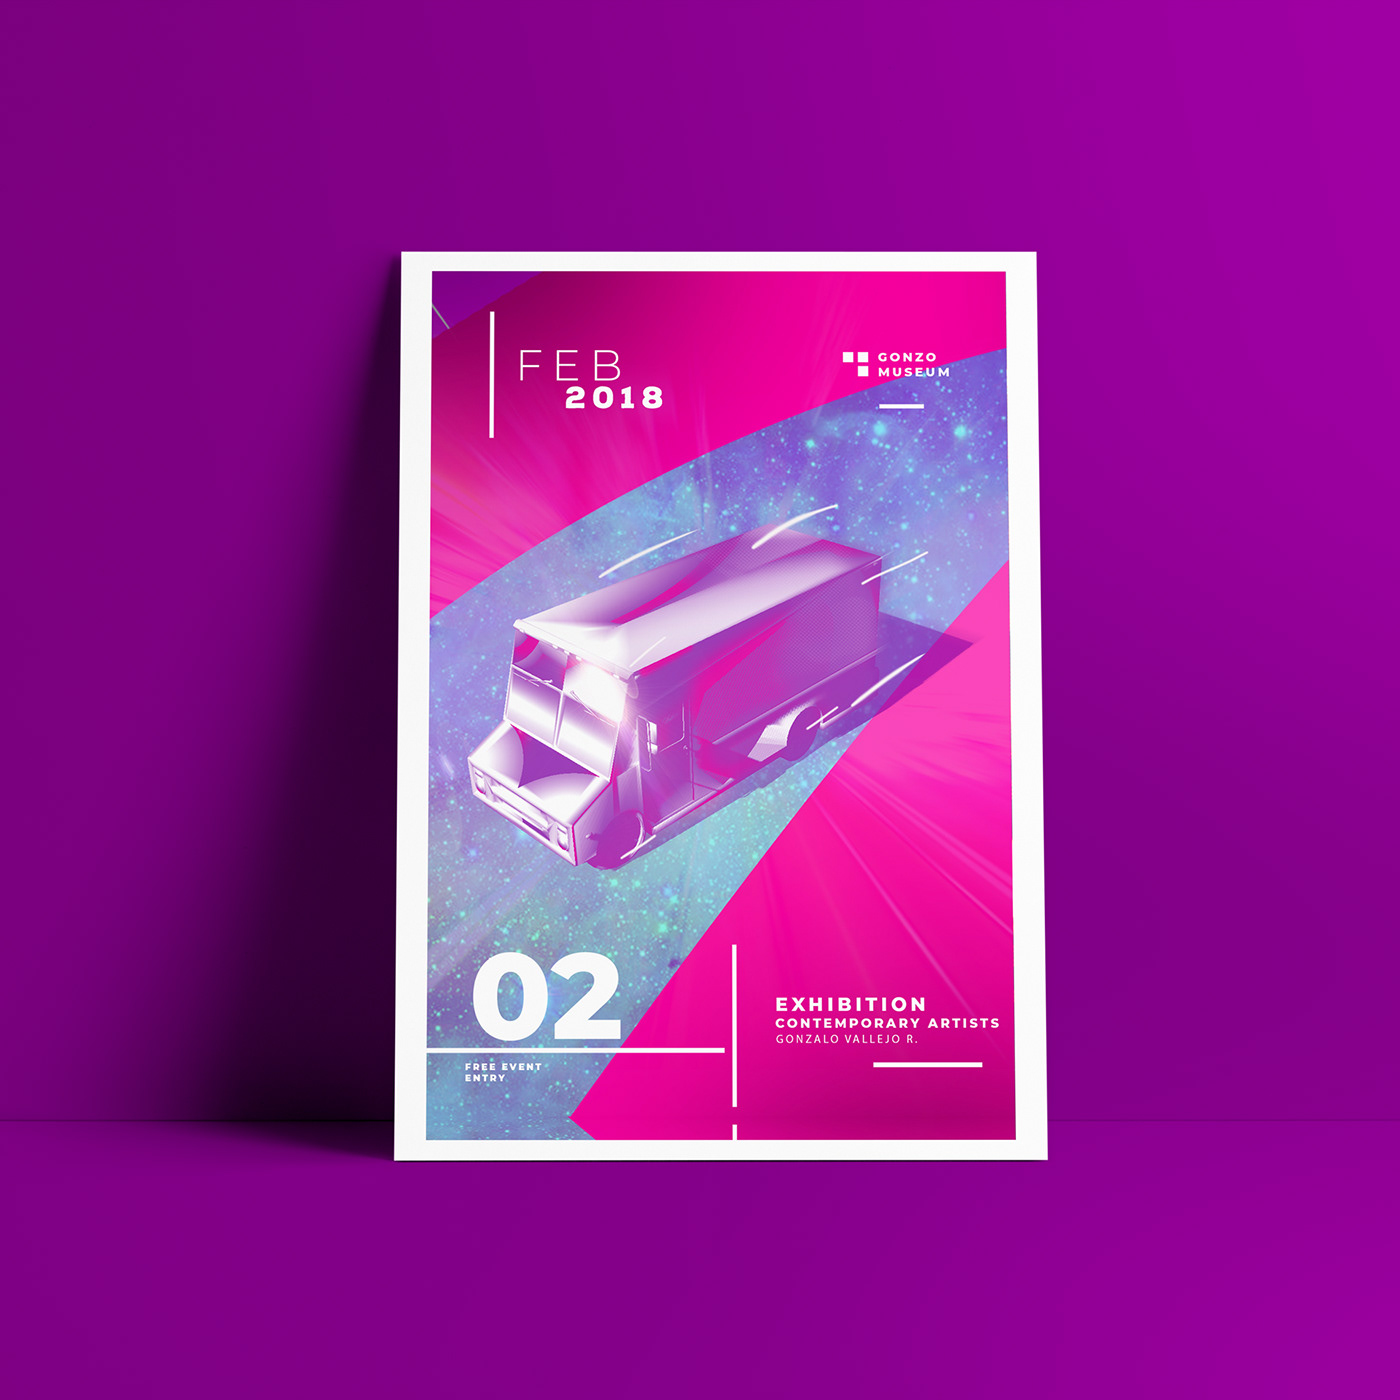 Posters in cinema 4D on Behance